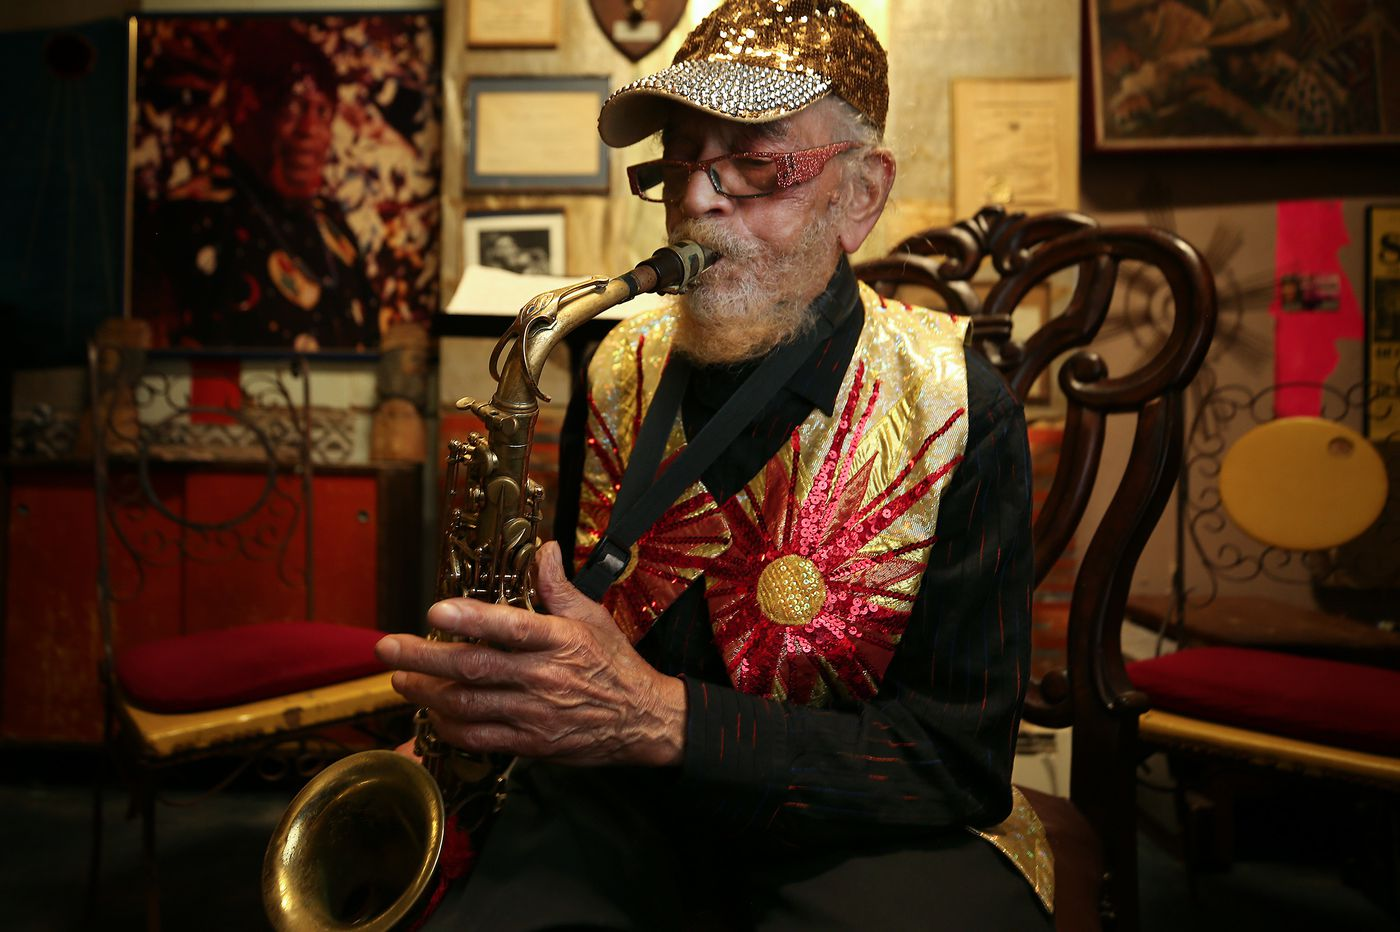 Sun Ra Arkestra is now traveling the spaceways with their first studio album in decades. We caught up with them at home in Philly.